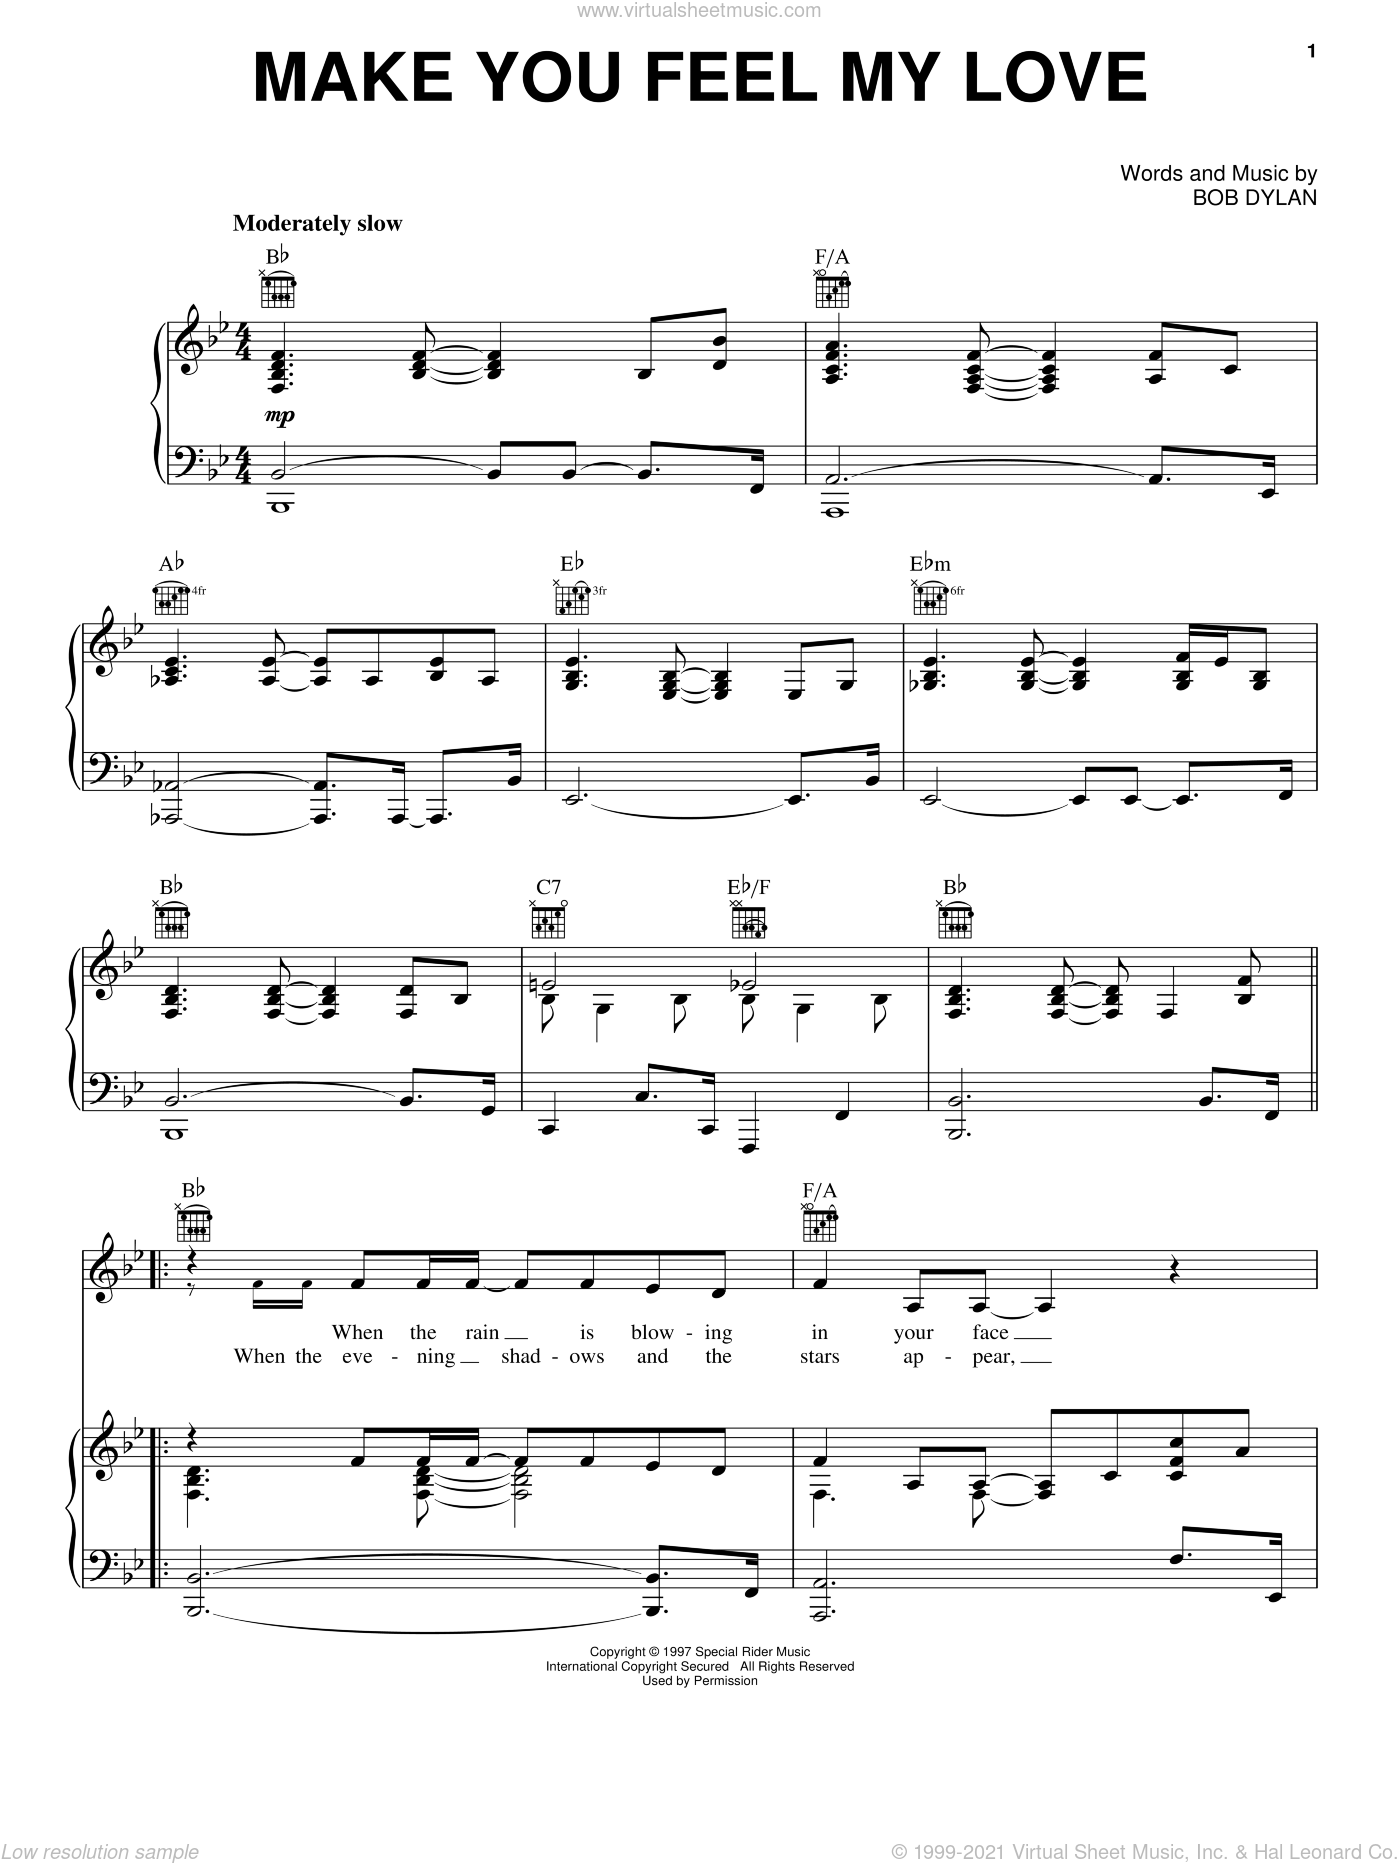 Make You Feel My Love sheet music for voice, piano or guitar by Adele, intermediate skill level